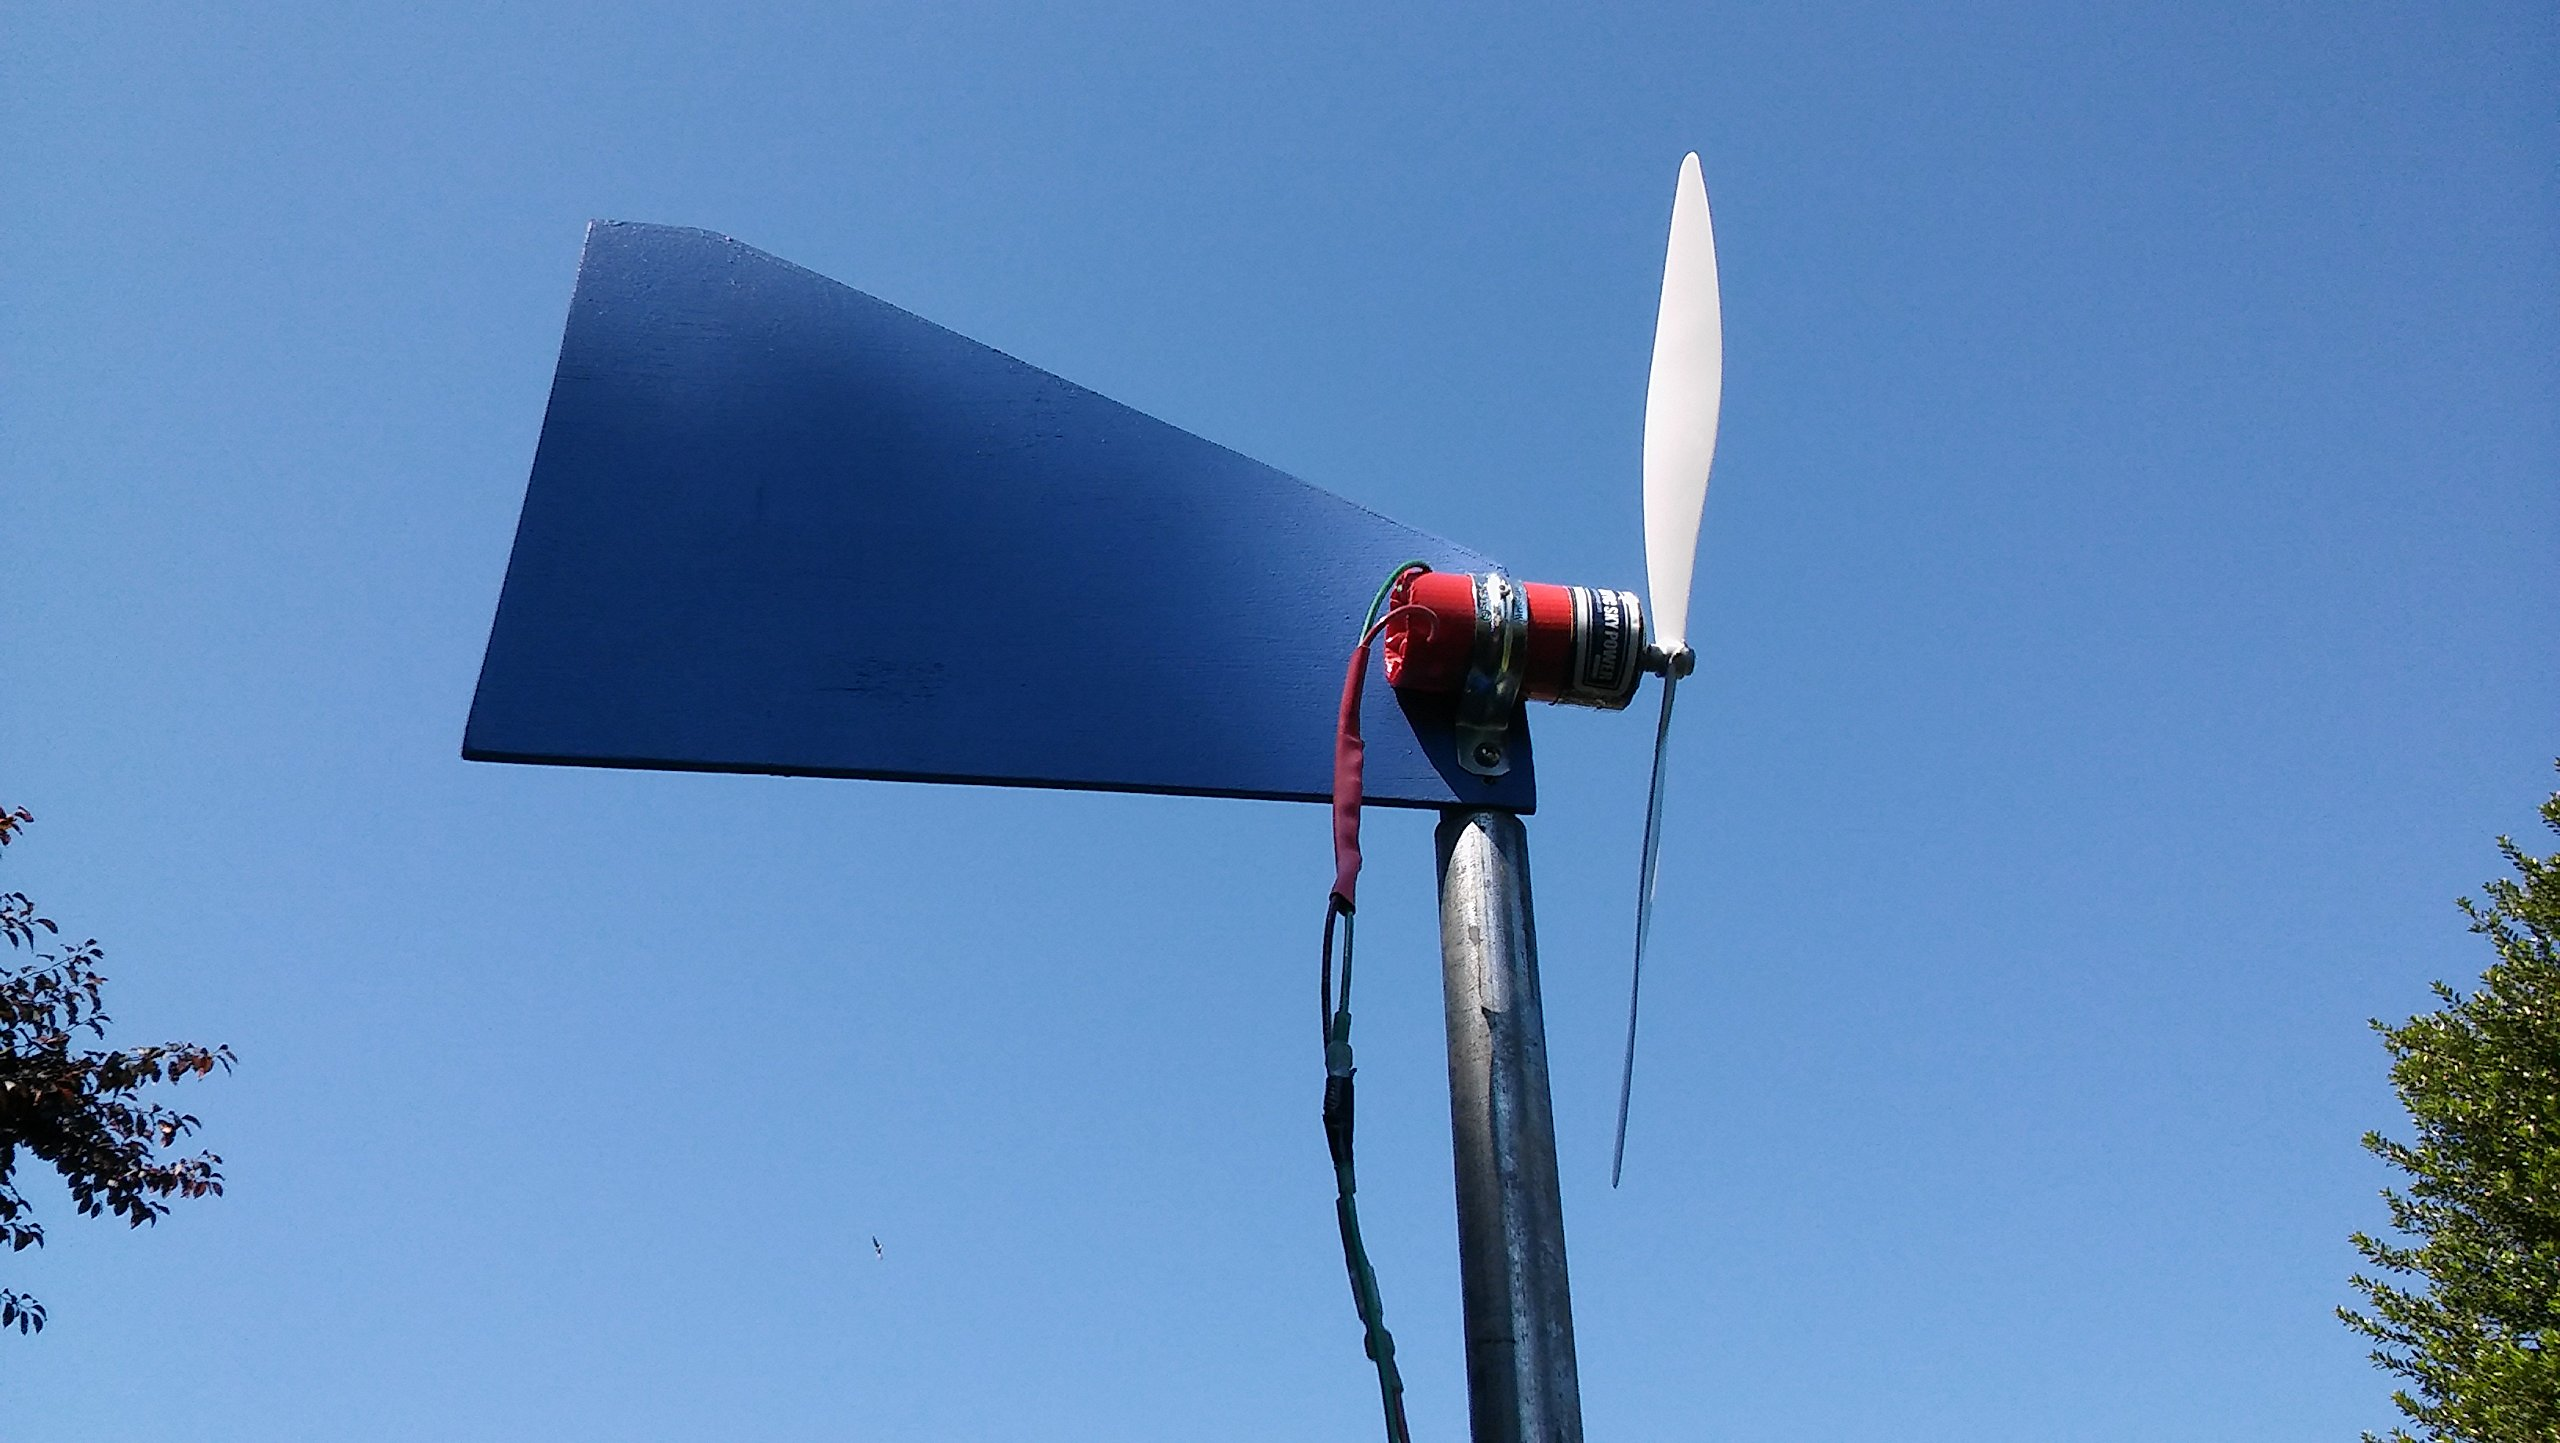 Pacific Sky Power Charger Wind Turbine Generator with Fin by Pacific Sky Power (Image #8)